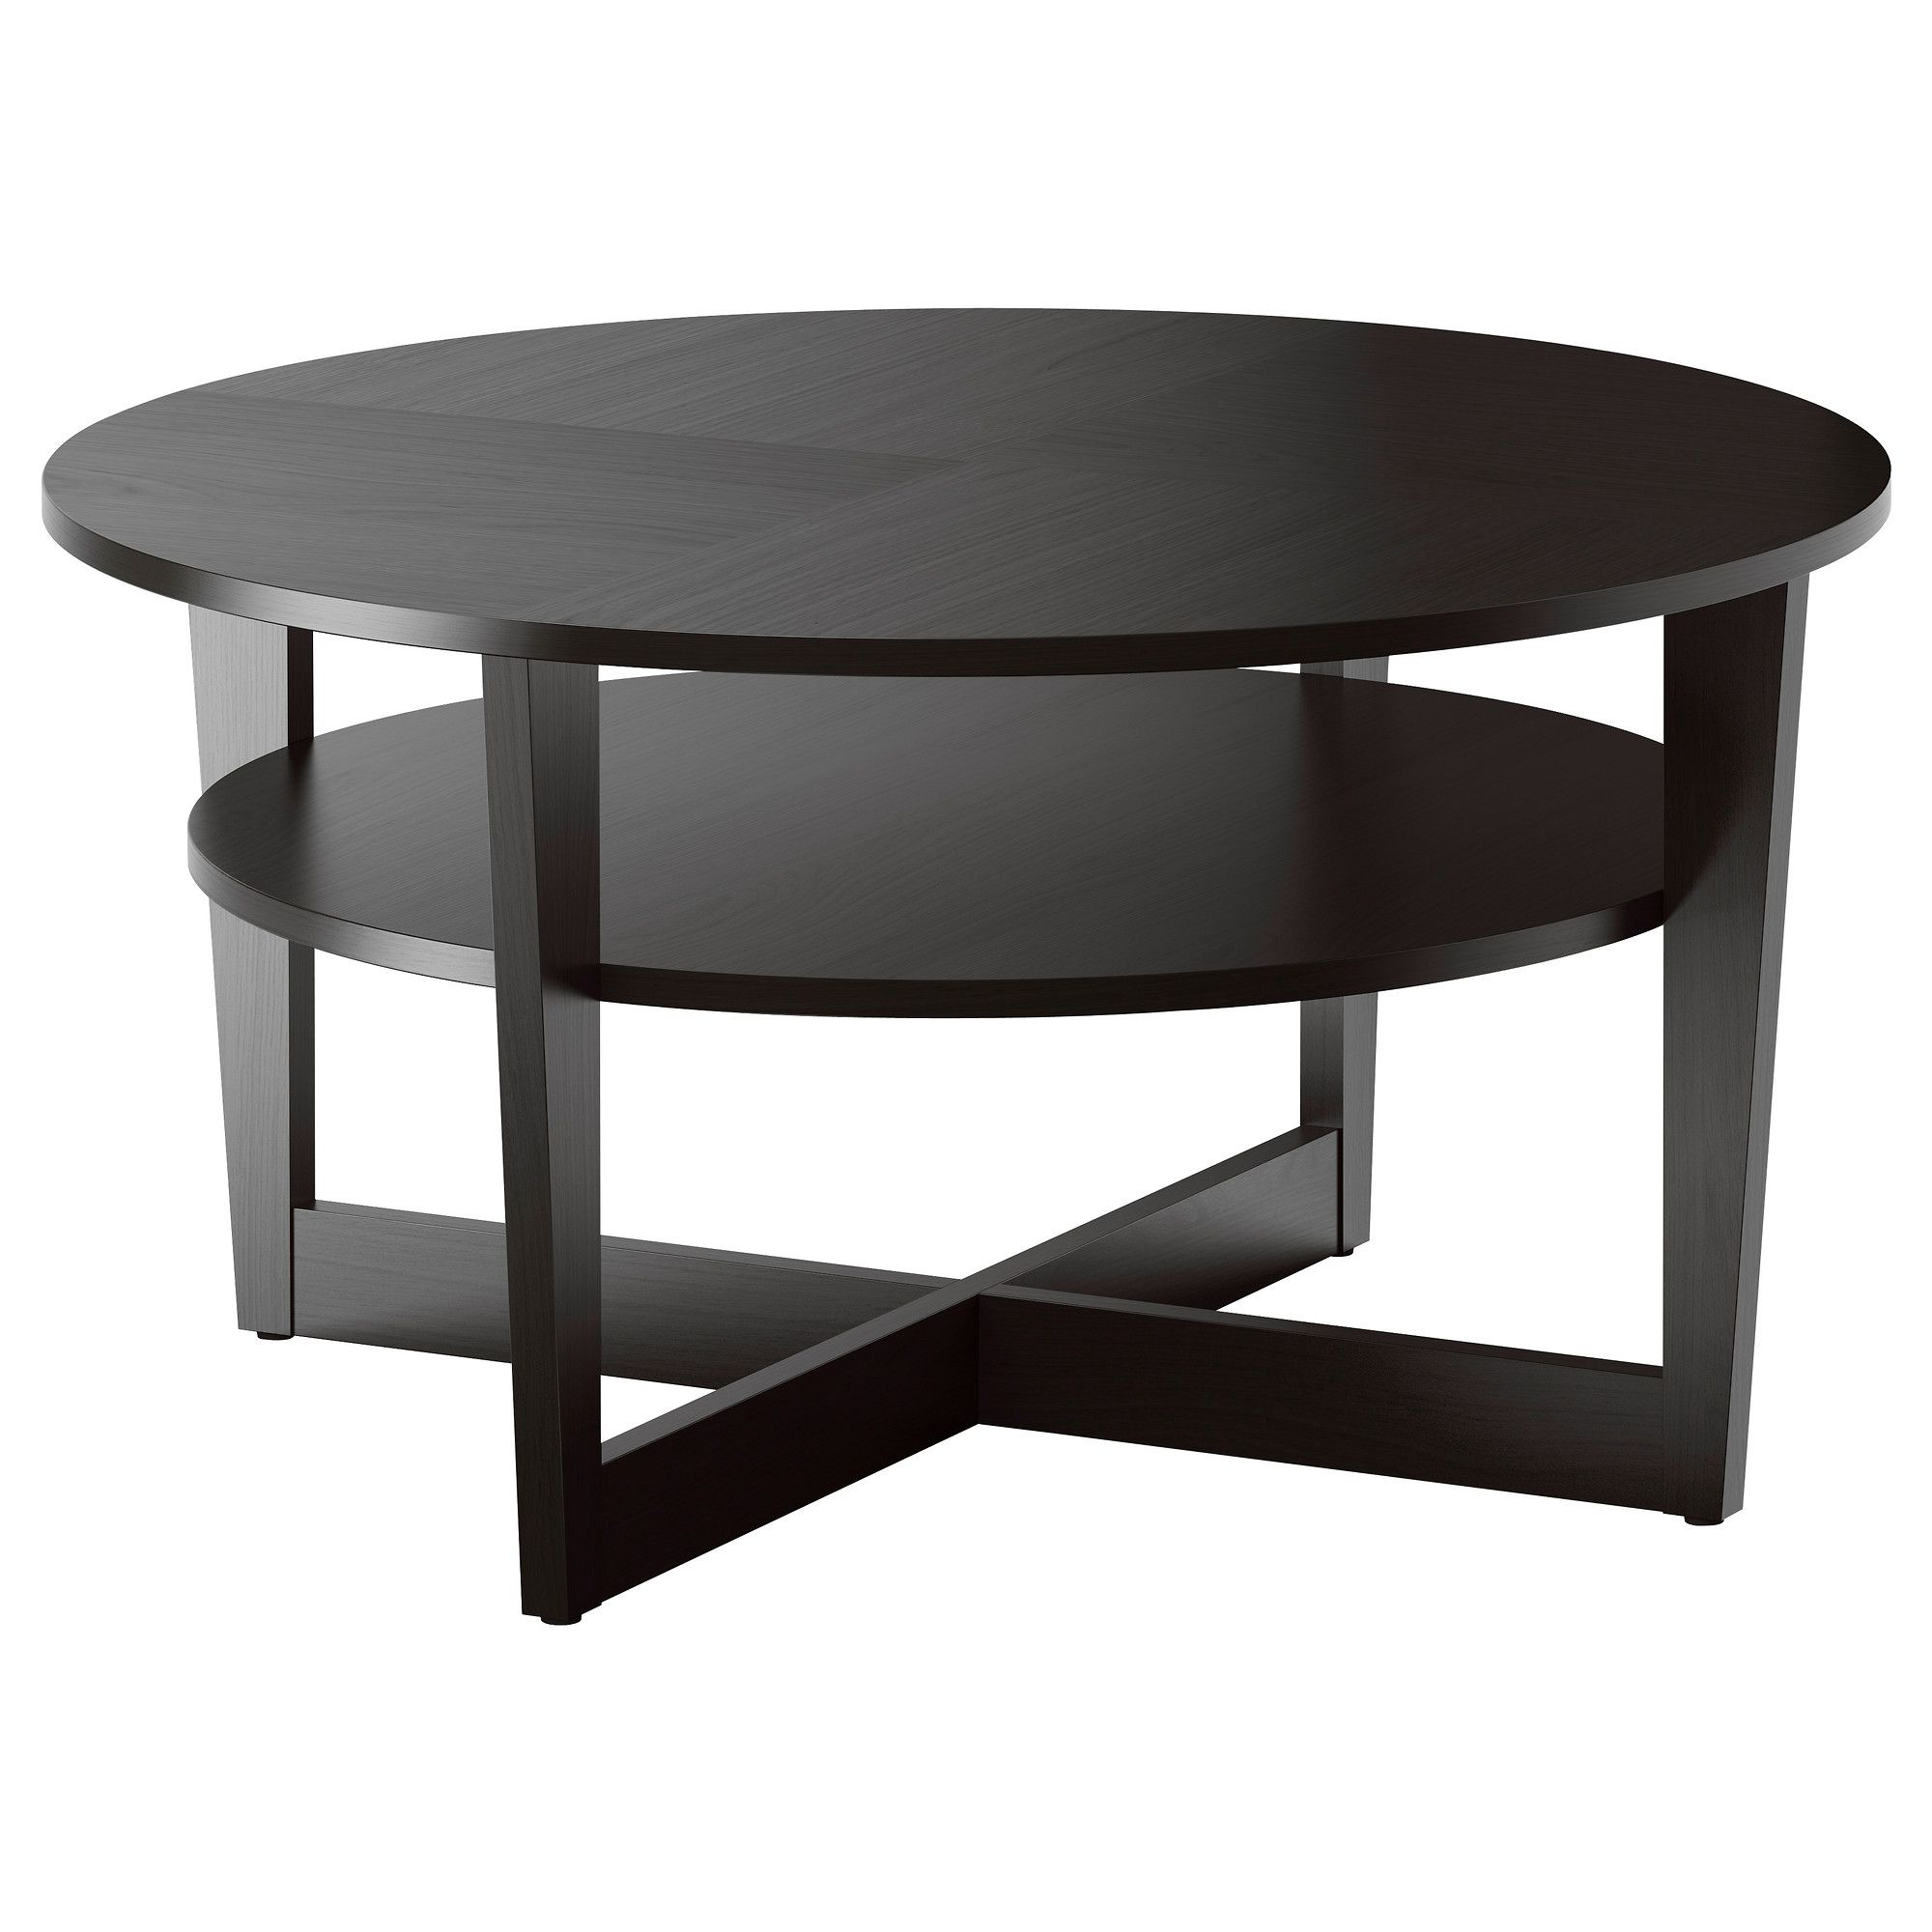 Small Round Coffee Table Ikea Living Room Table Set Check more